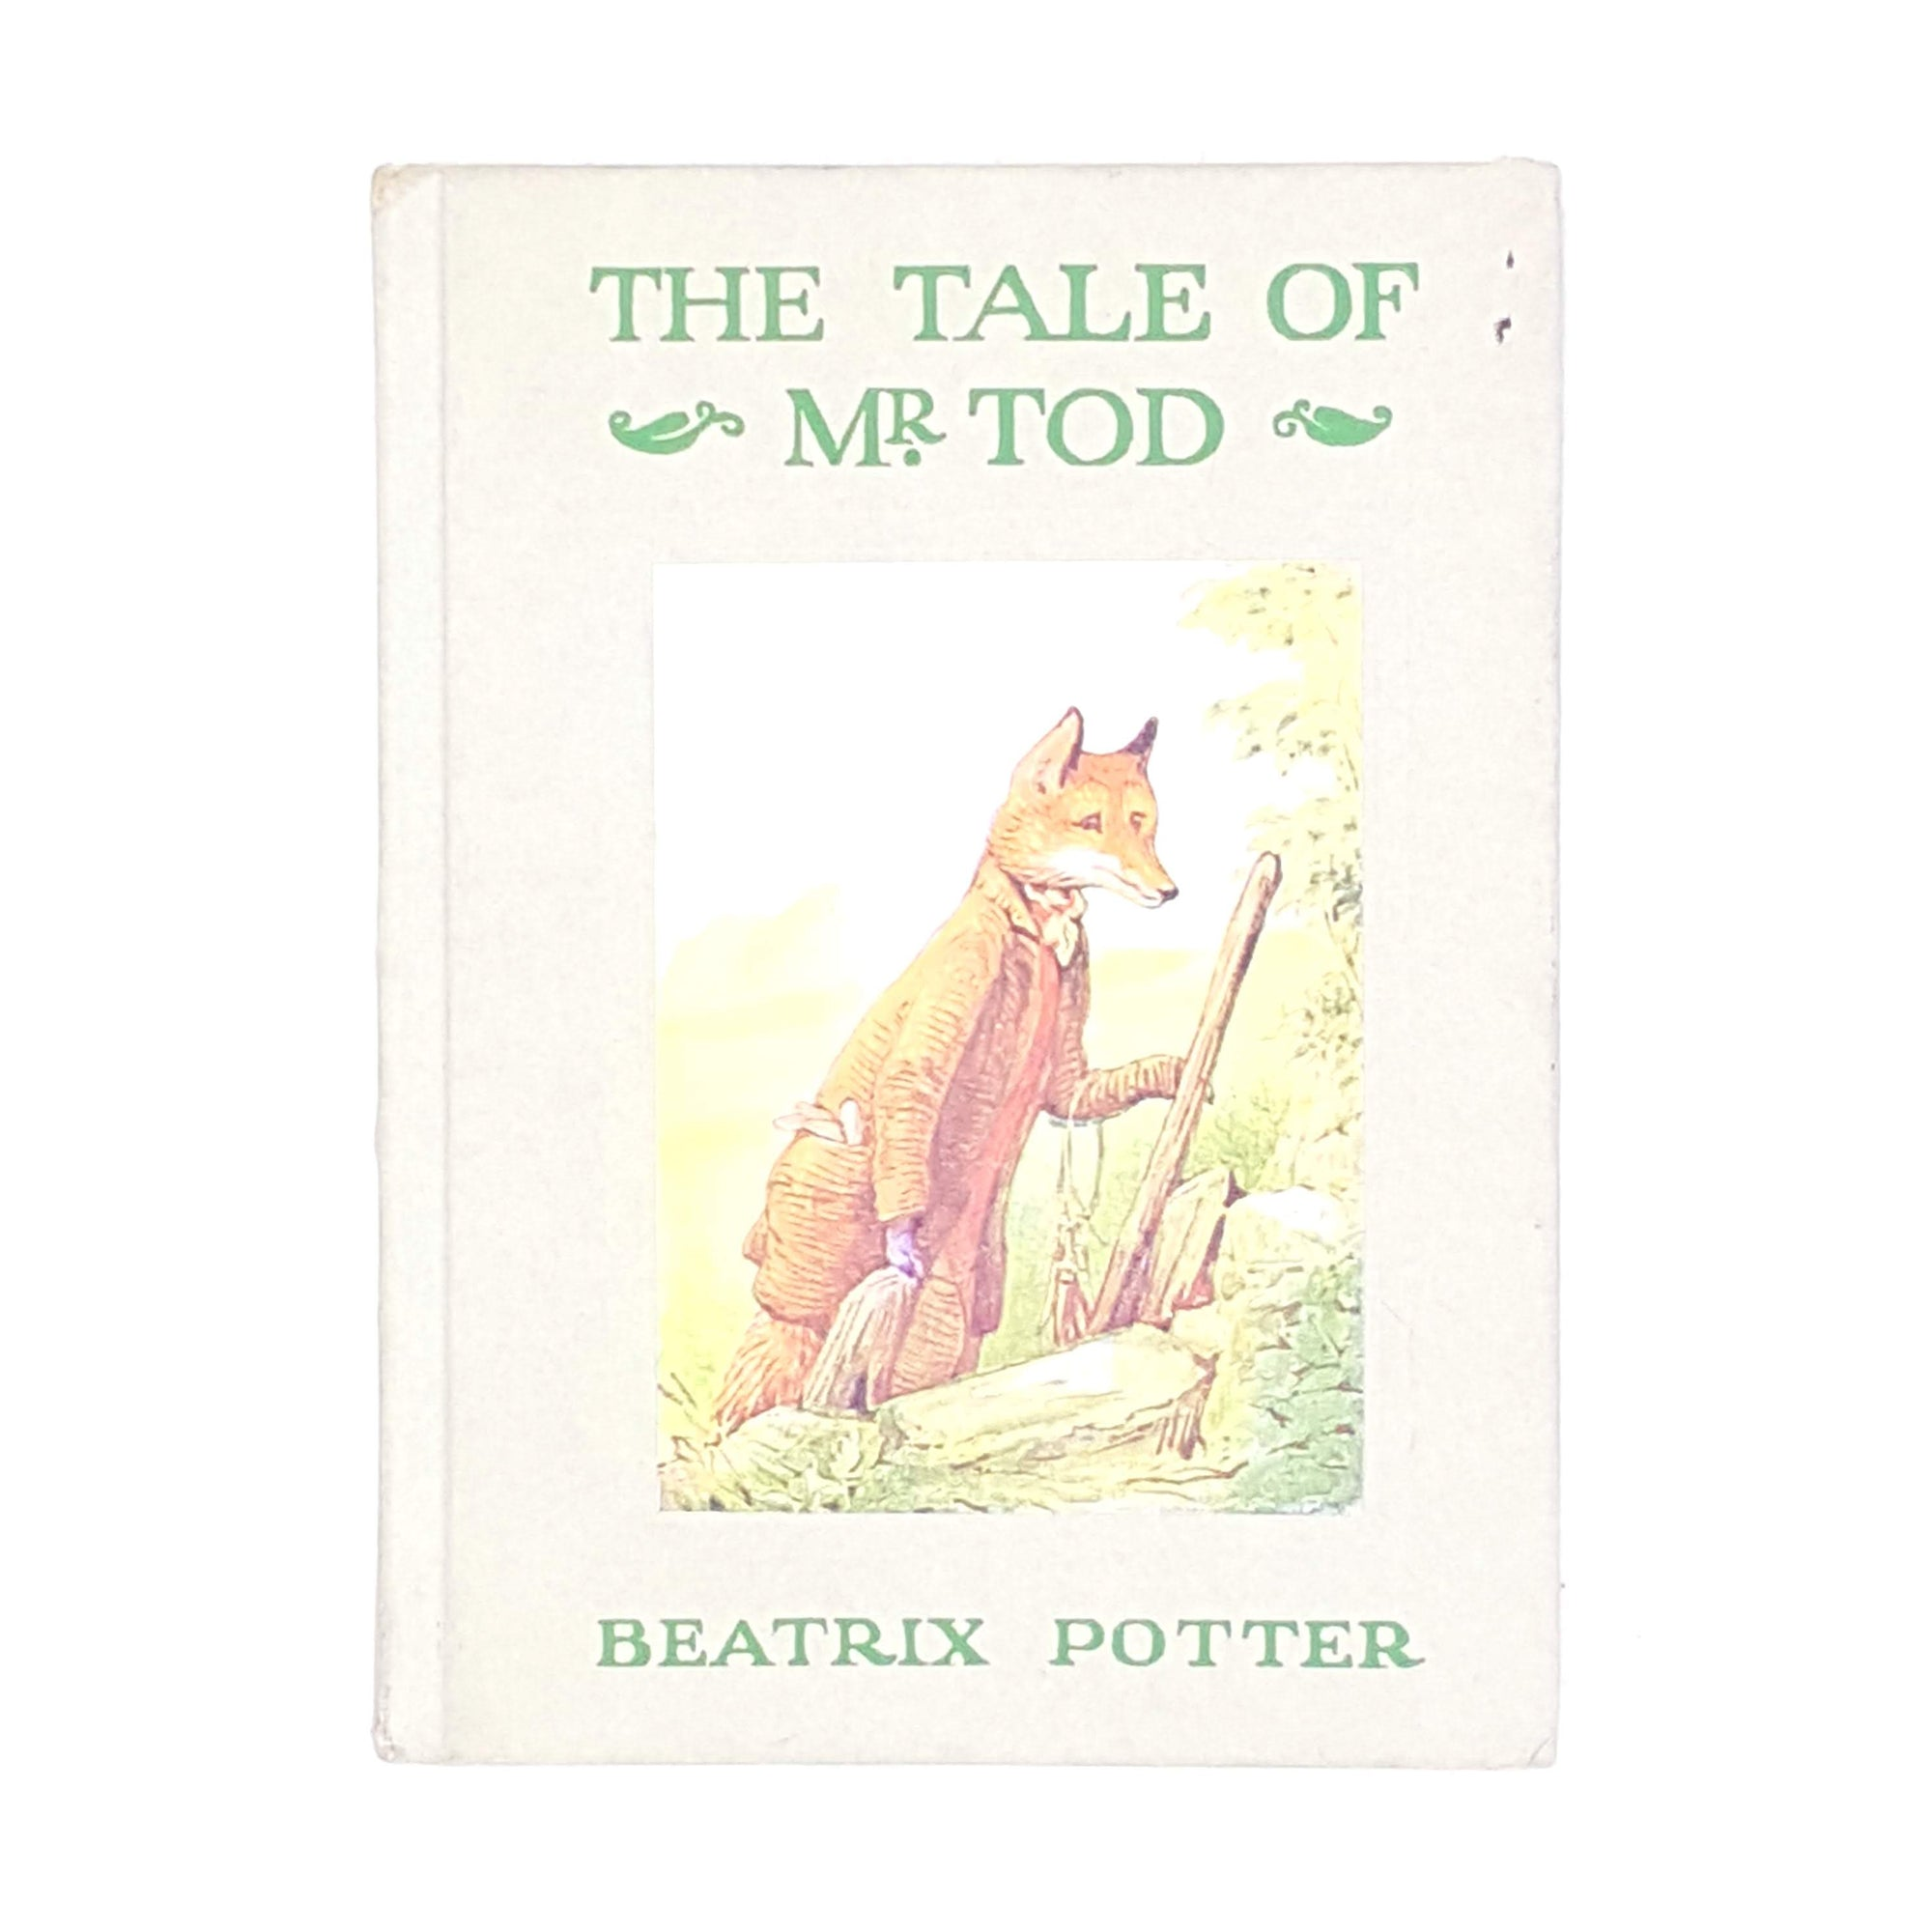 beatrix-potter-patterned-country-house-library-books-vintage-thrift-old-antique-tale-of-mr-tod-grey-decorative-classic-childrens-